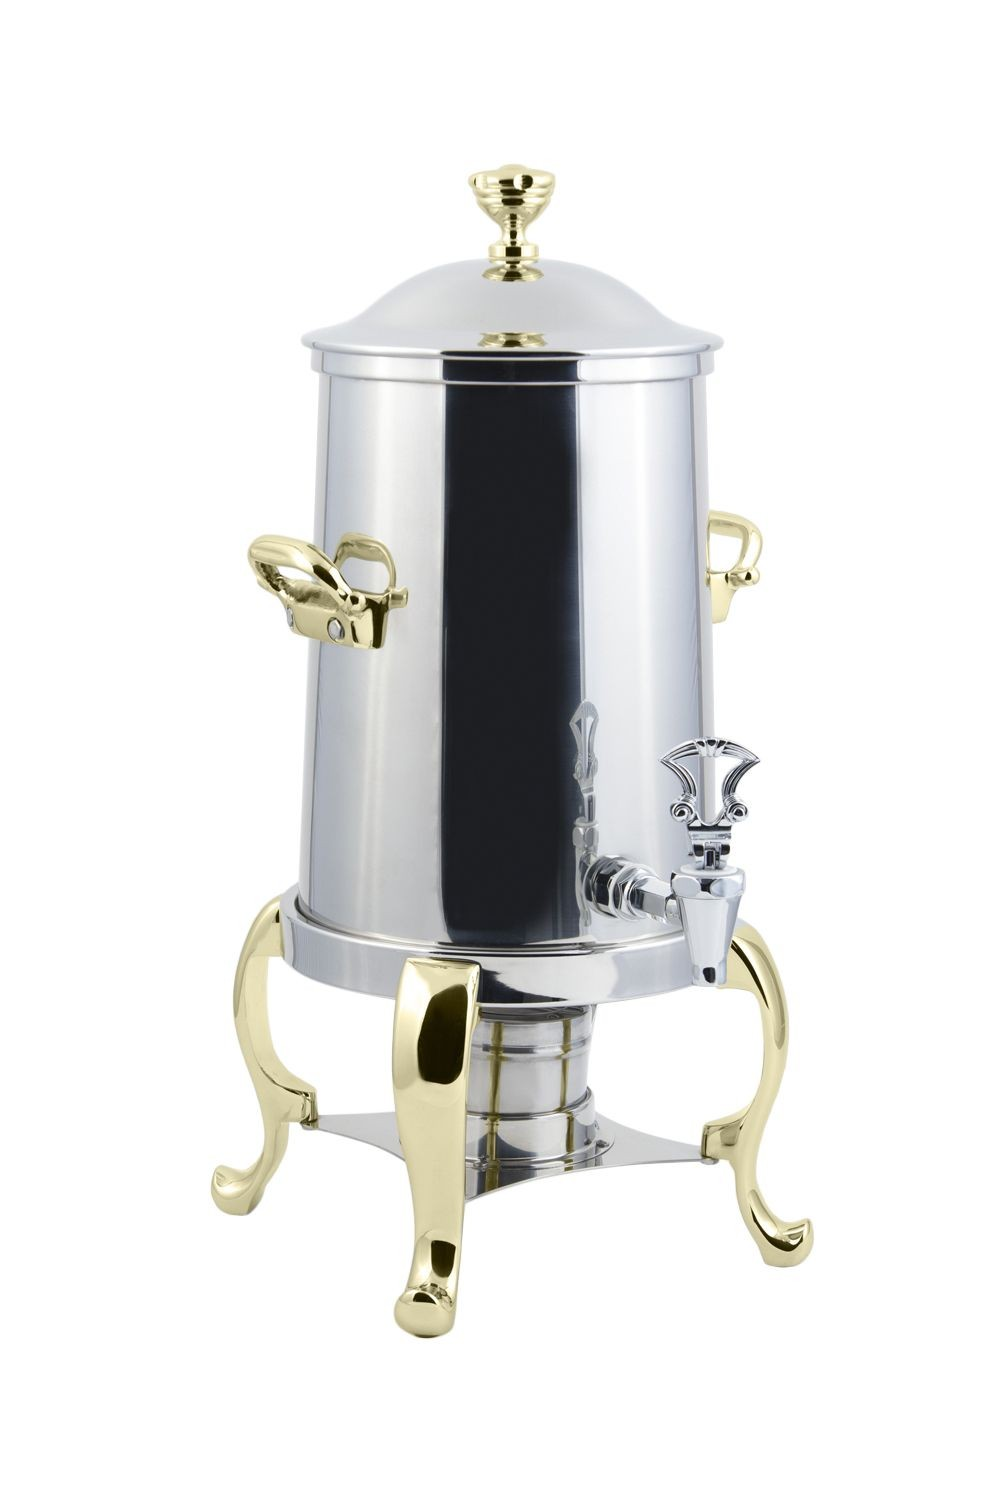 Bon Chef 49105 Roman Non-Insulated Coffee Urn, 5 1/2 Gallon